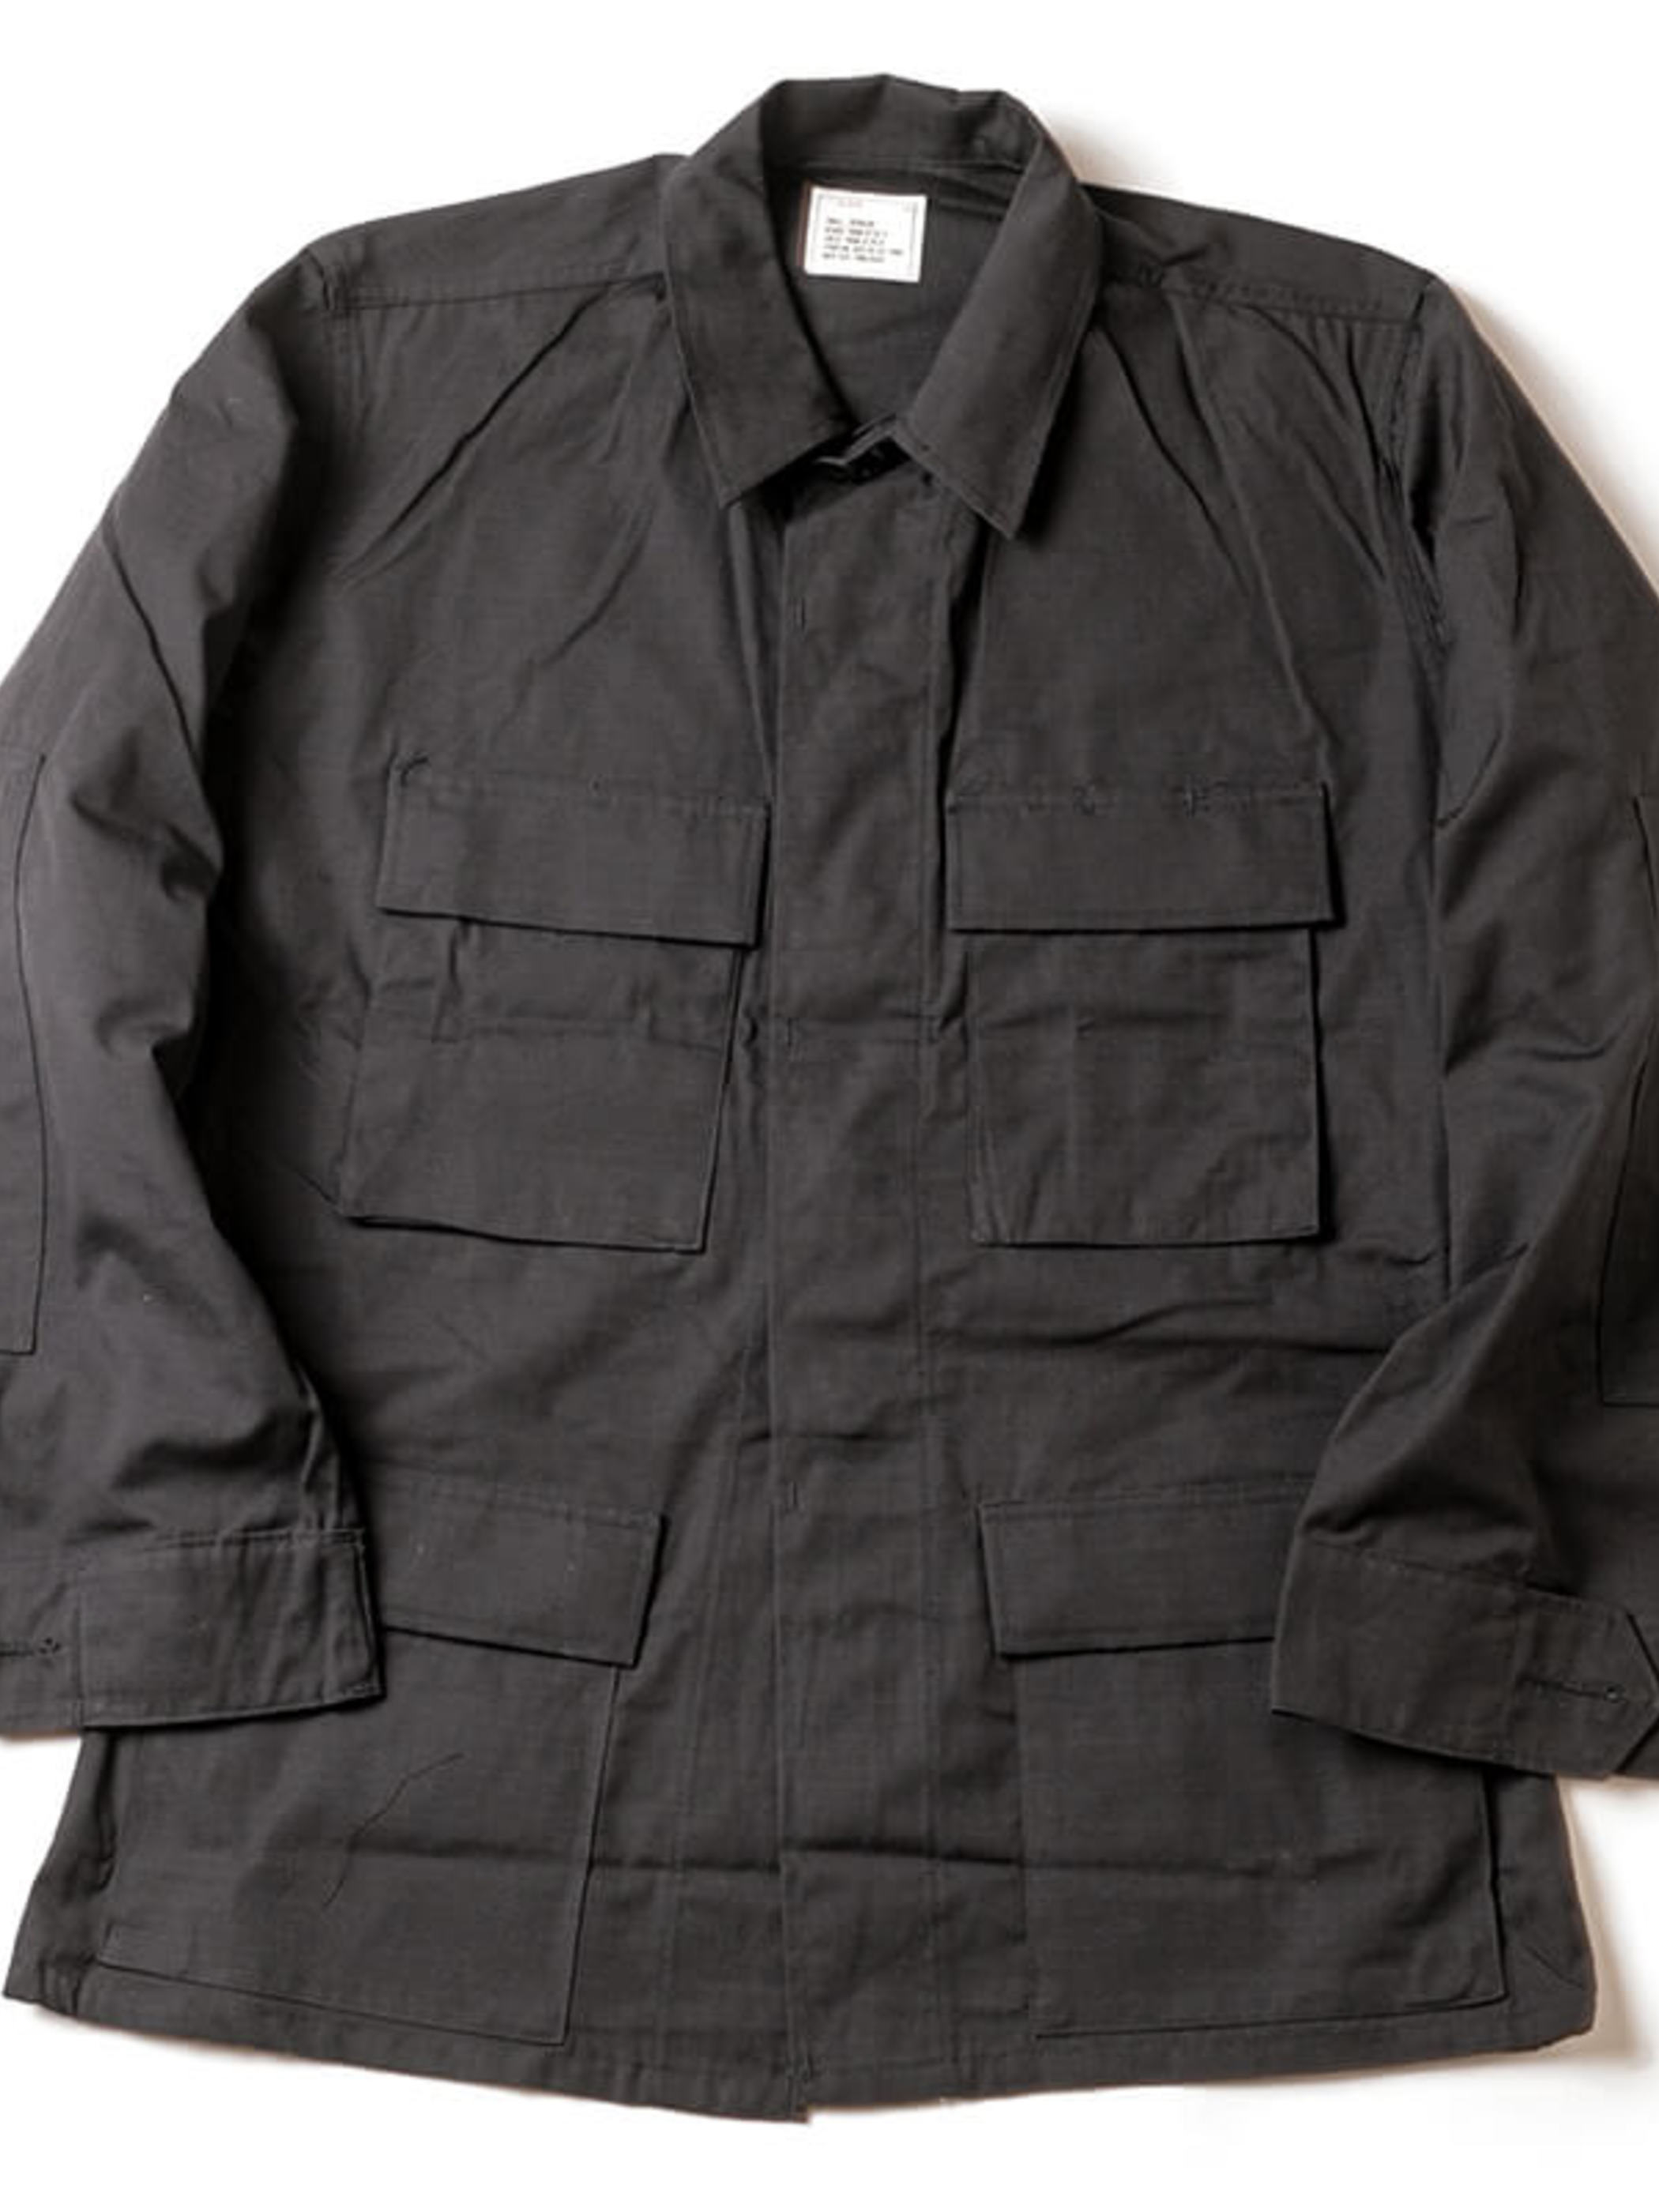 US Military / 1990's Deadstock / BDU Jacket / 357 Black